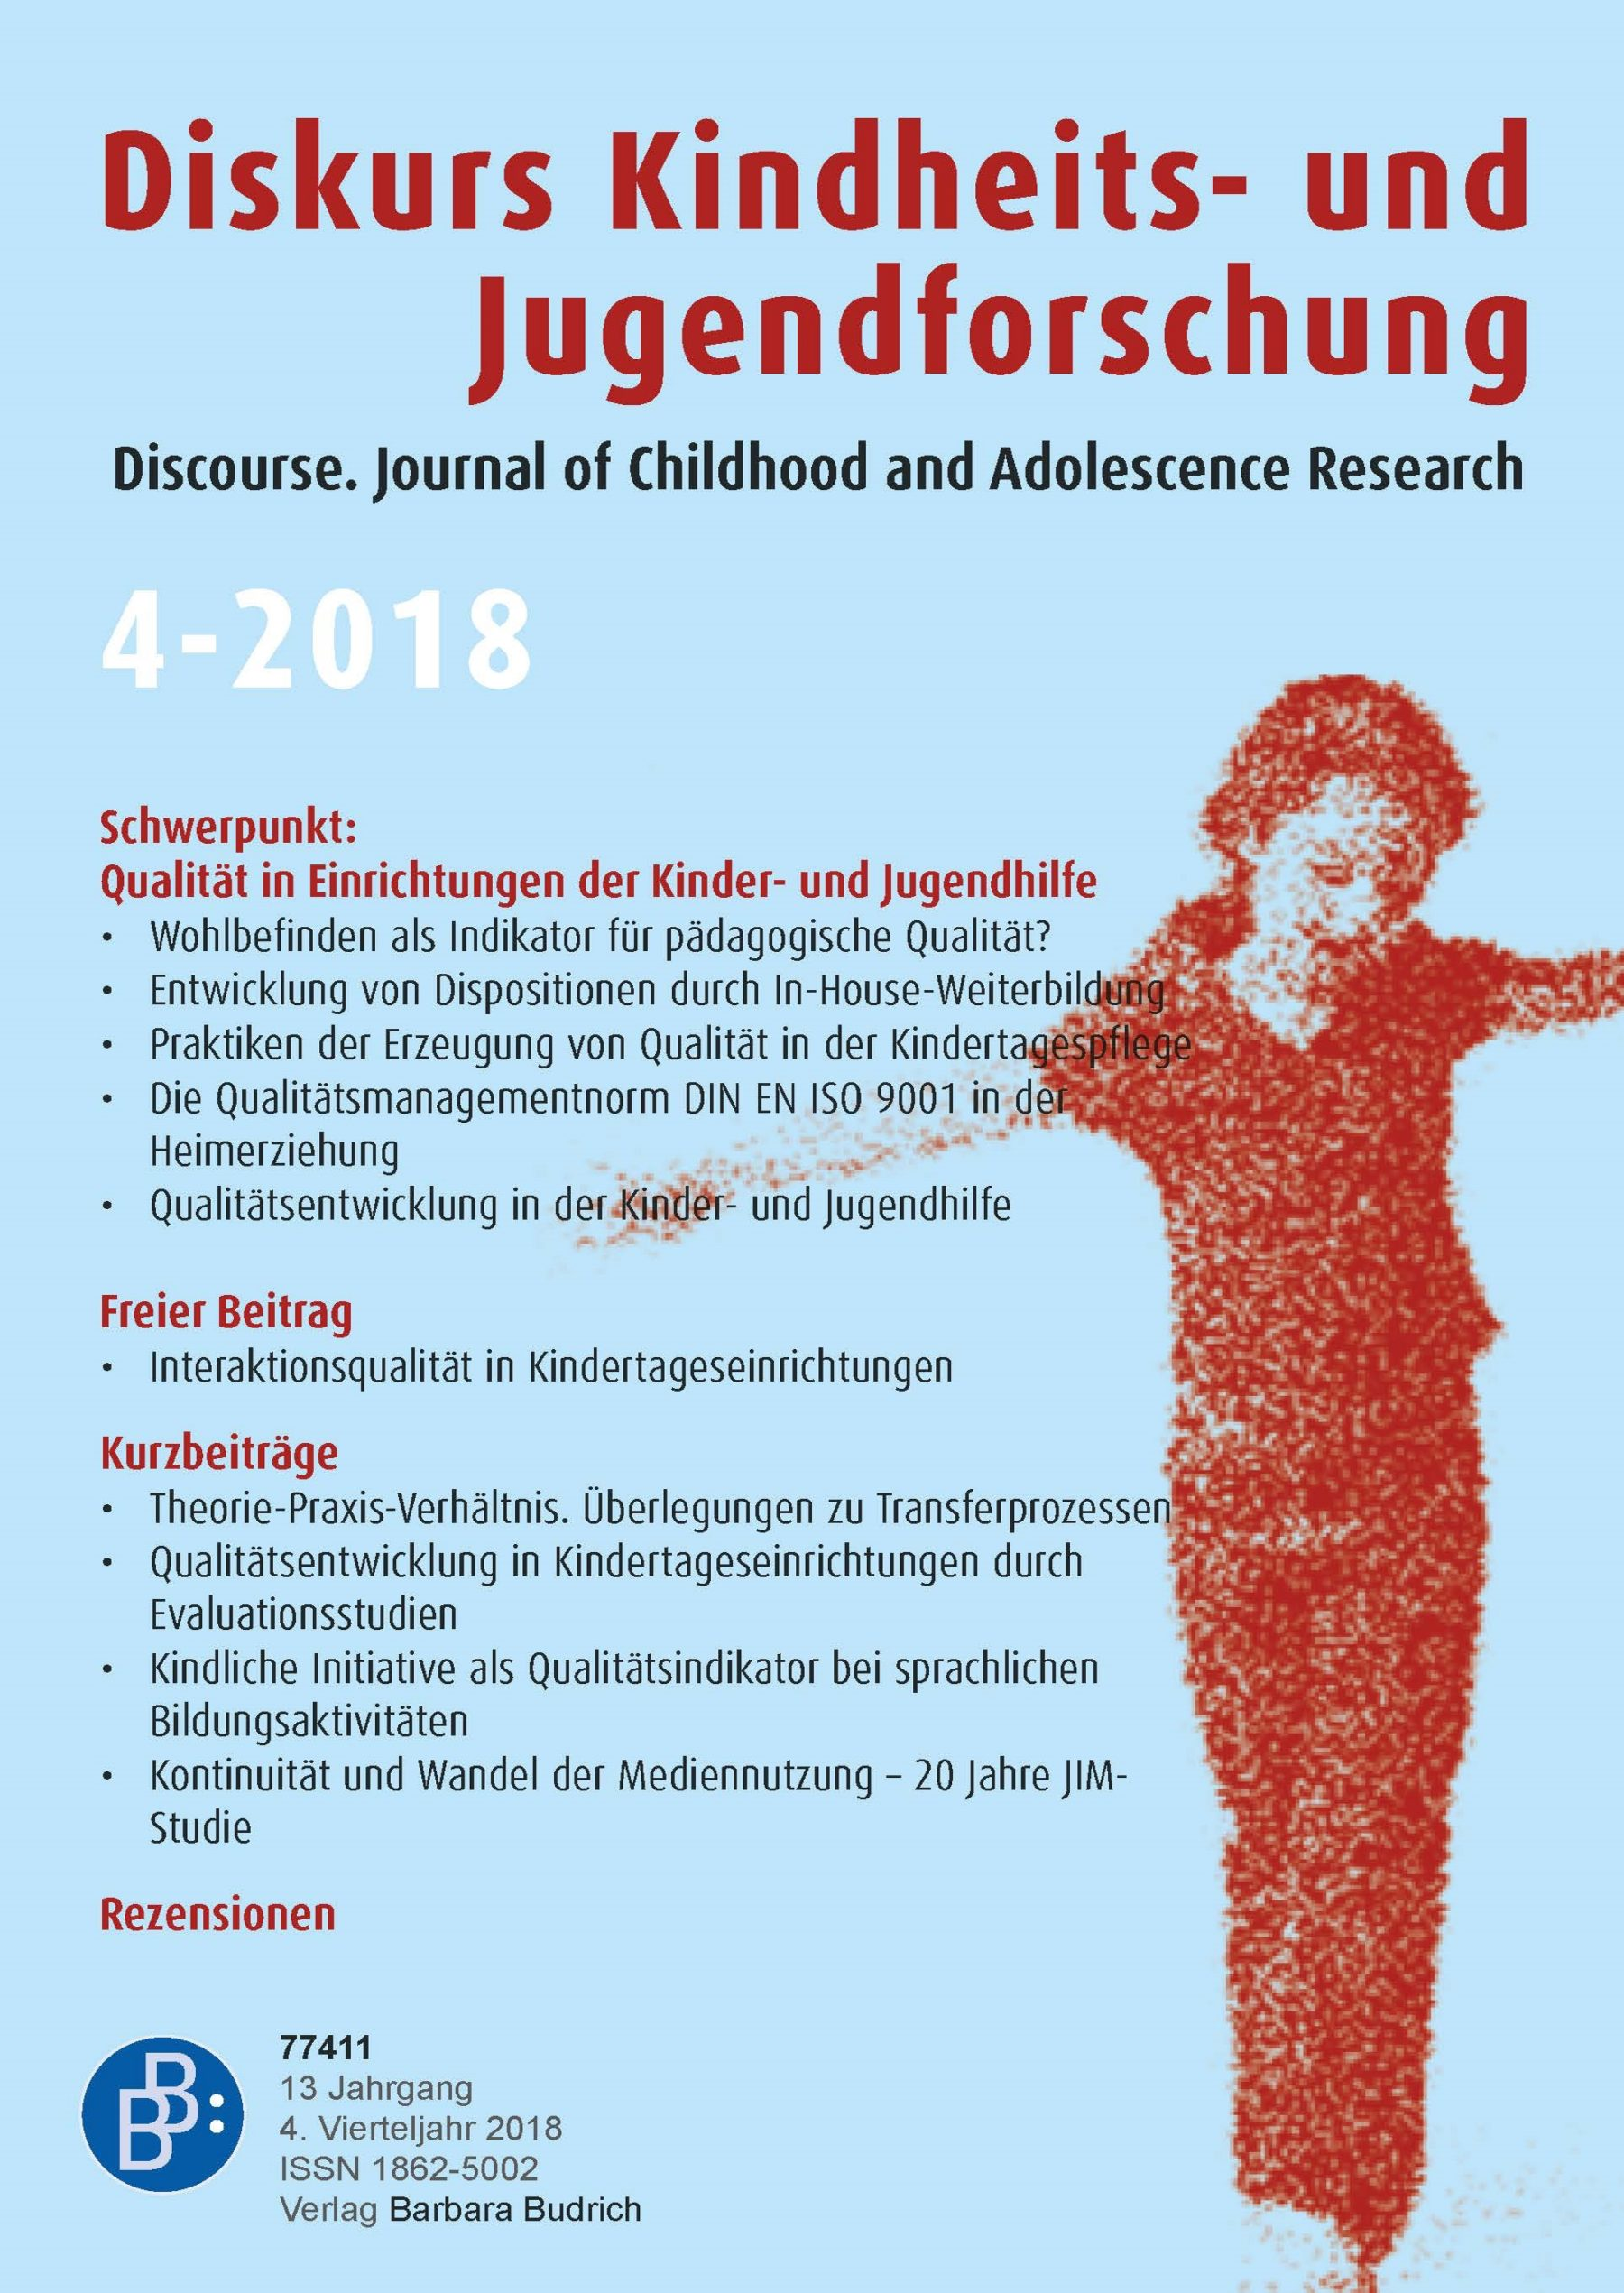 Diskurs Kindheits- und Jugendforschung / Discourse. Journal of Childhood and Adolescence Research 4-2018: Qualität in Einrichtungen der Kinder- und Jugendhilfe